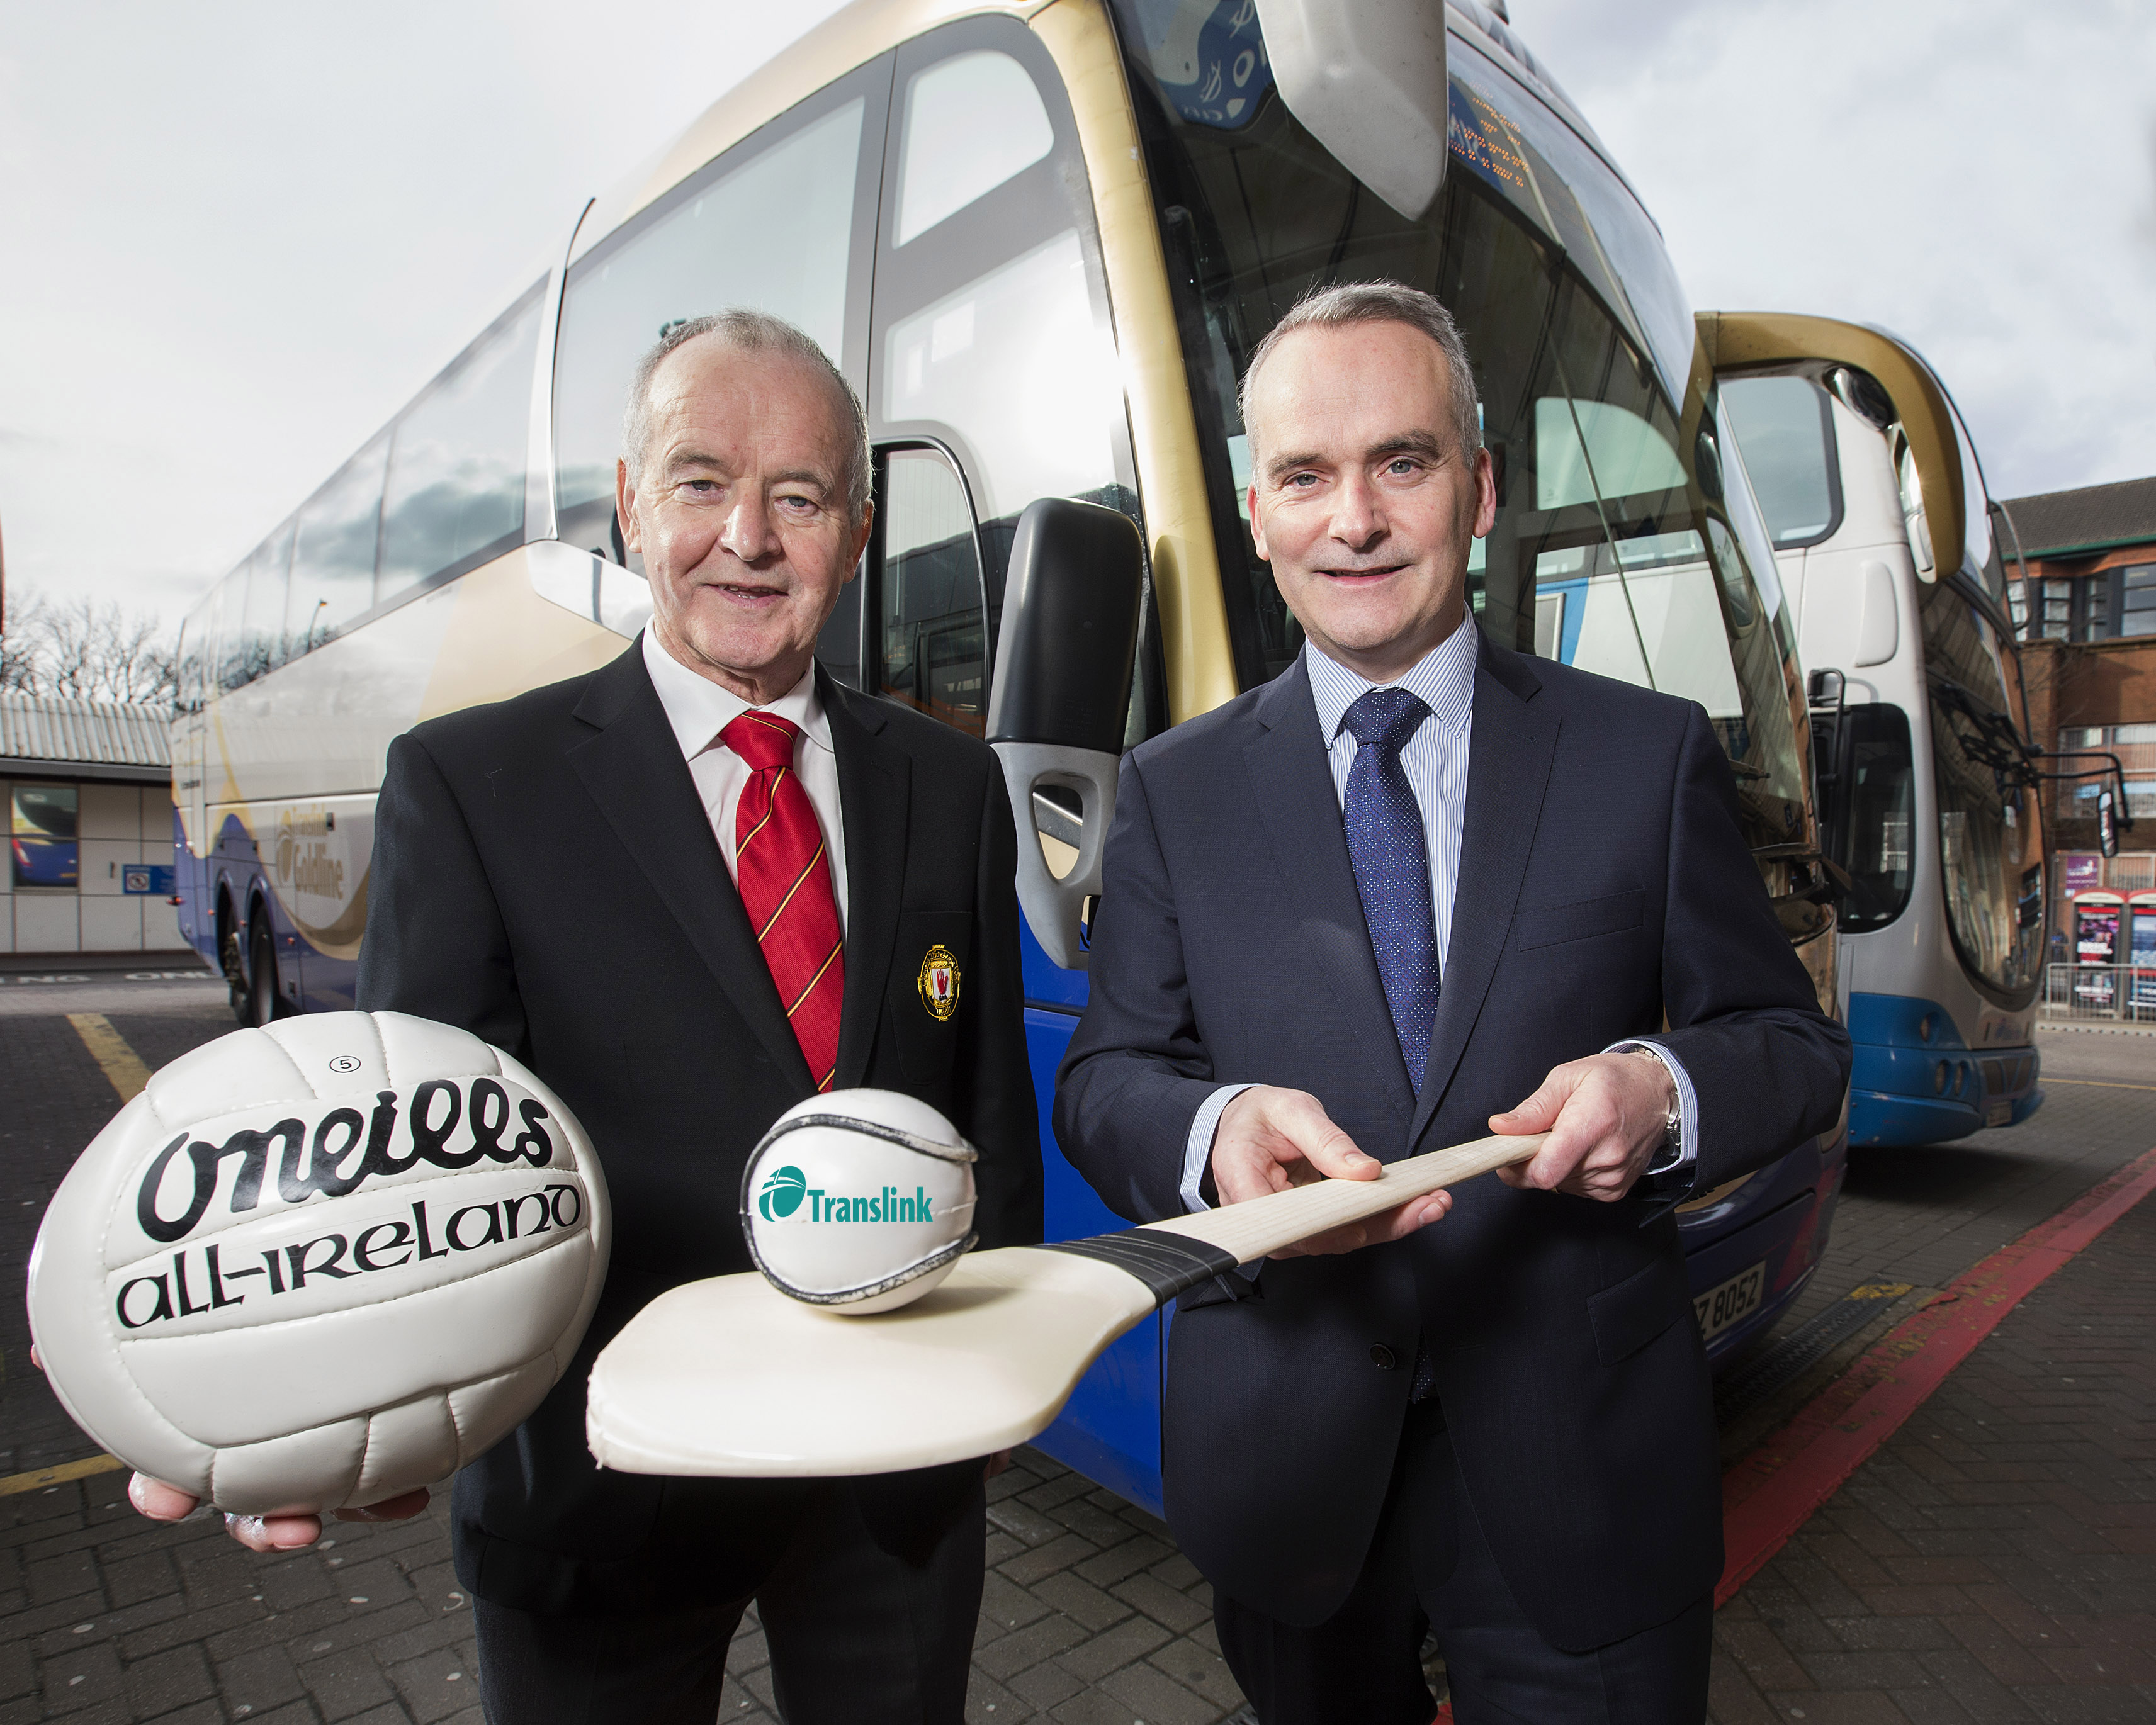 Ulster GAA pleased to announce Translink as a Corporate Partner